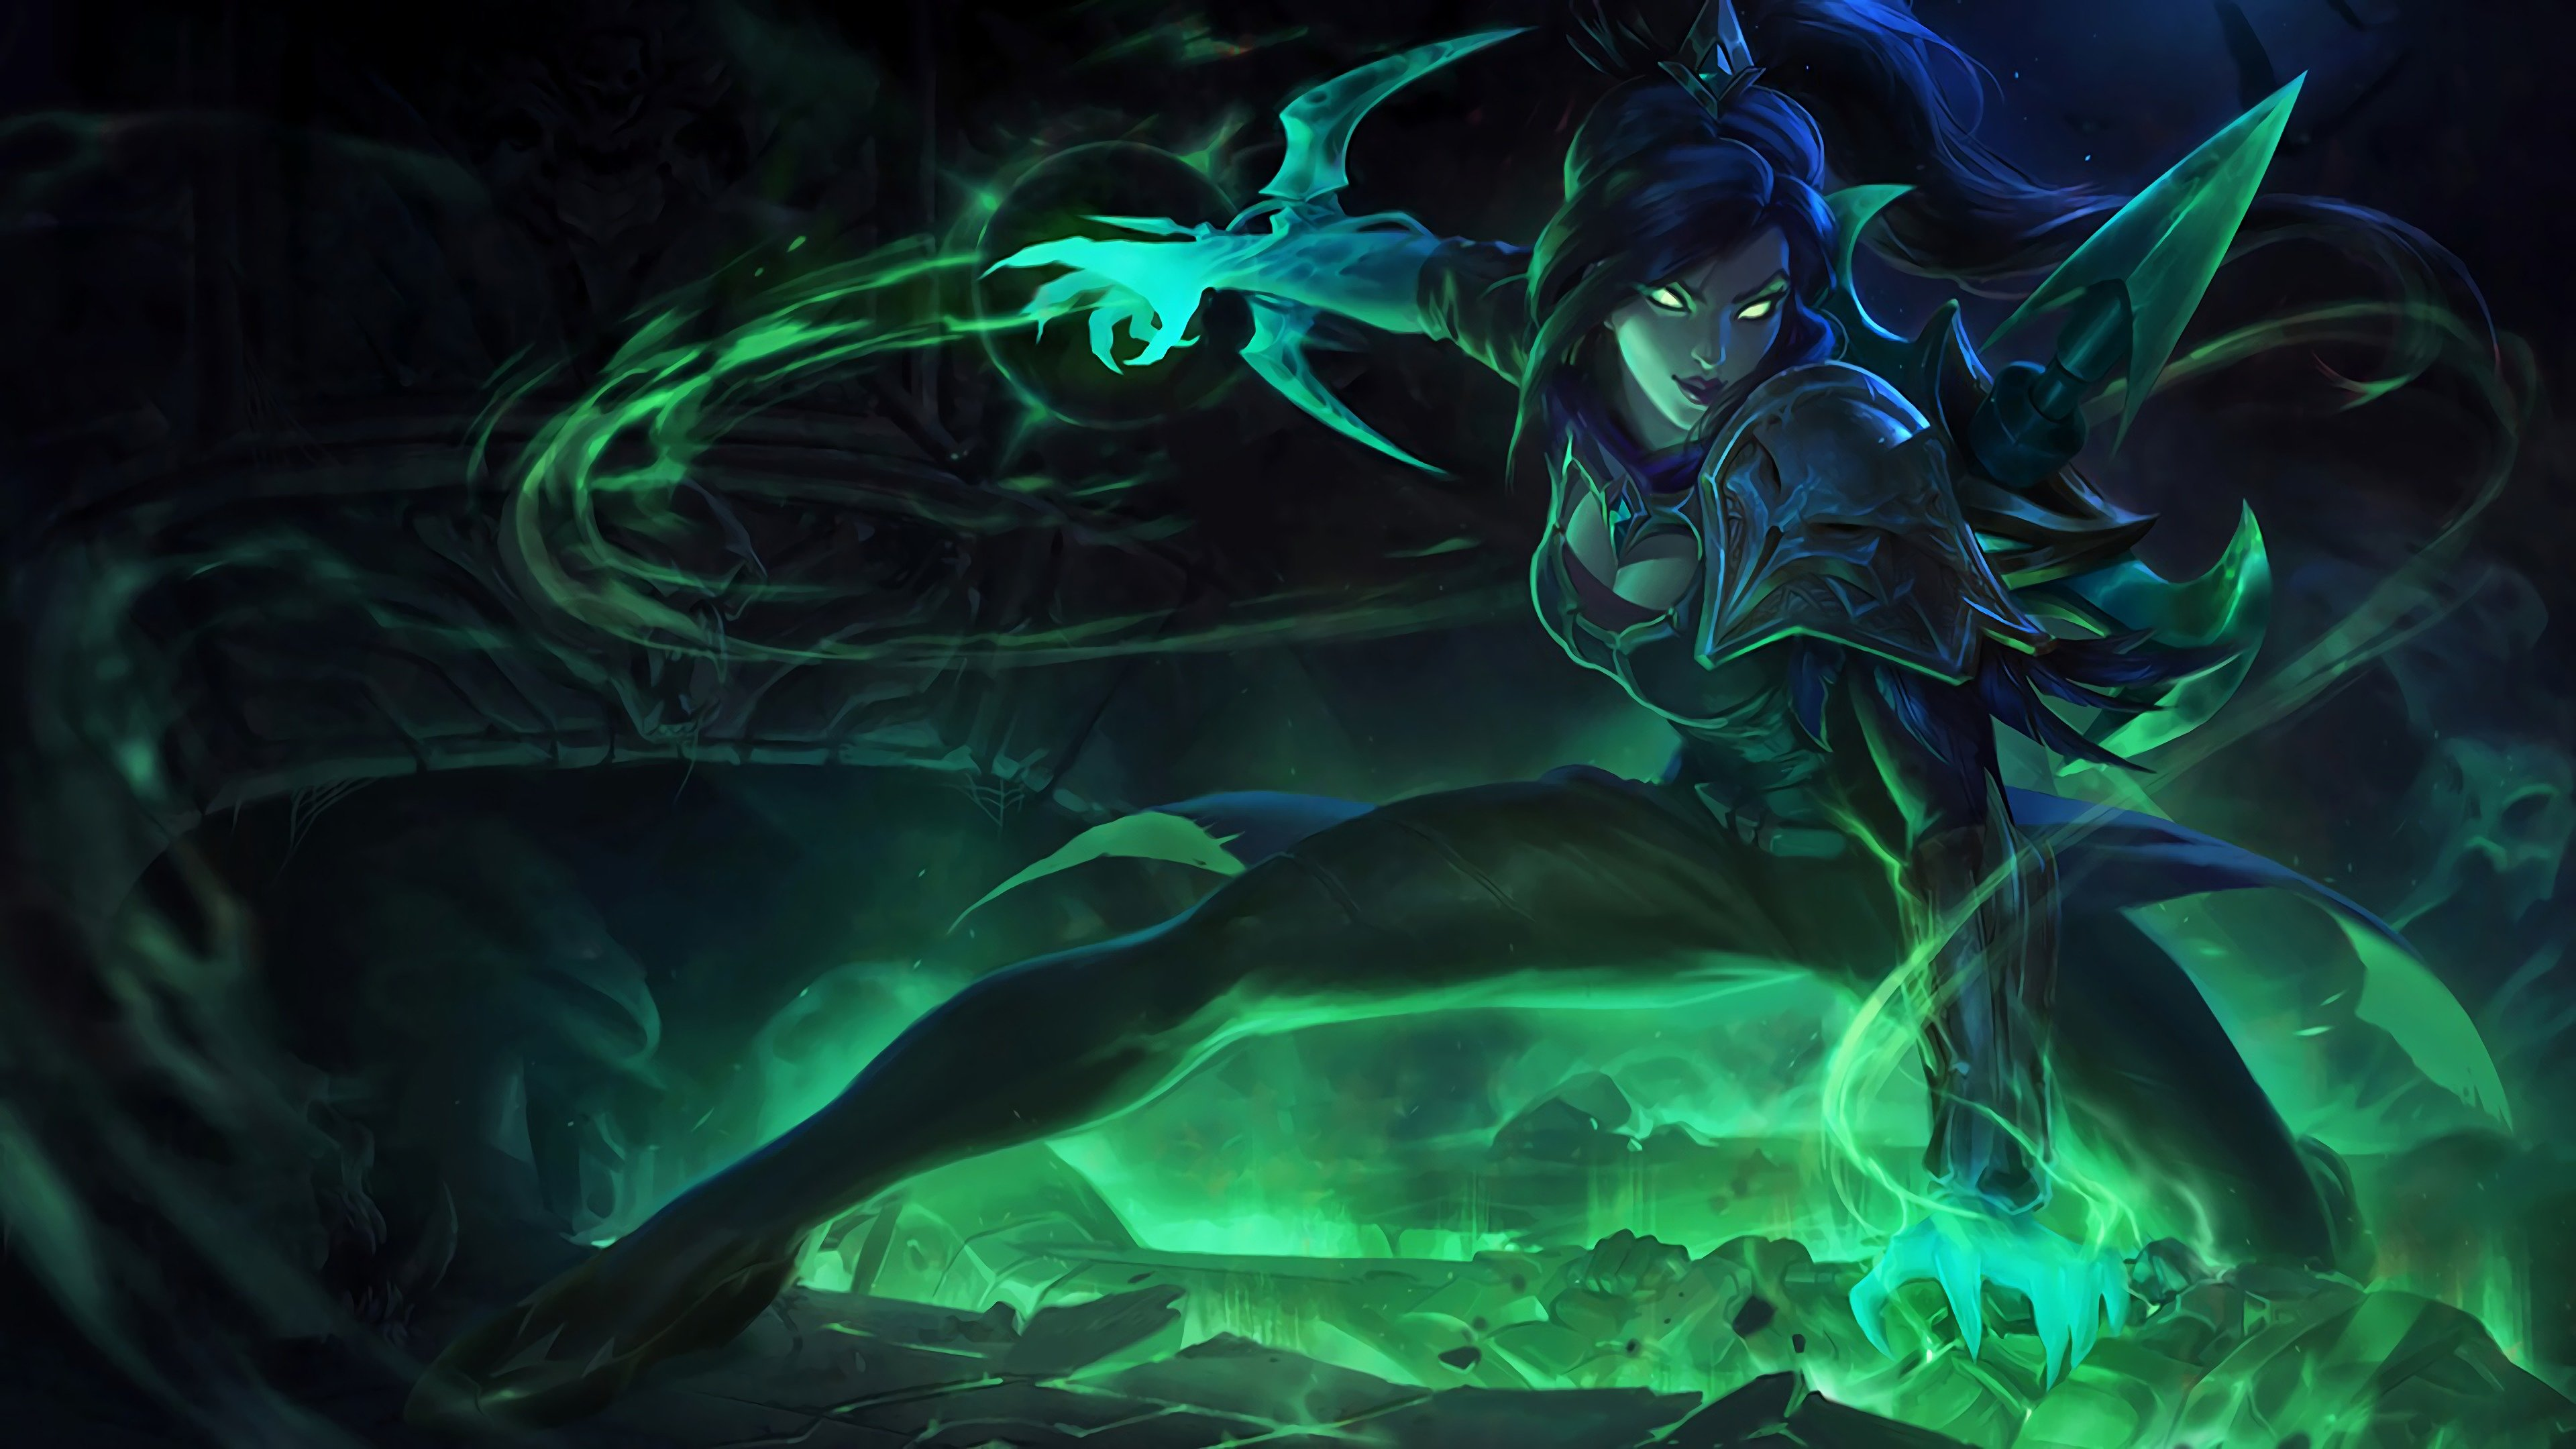 League Of Legends Lol Wallpapers 3840x2160 Ultra Hd 4k Desktop Backgrounds